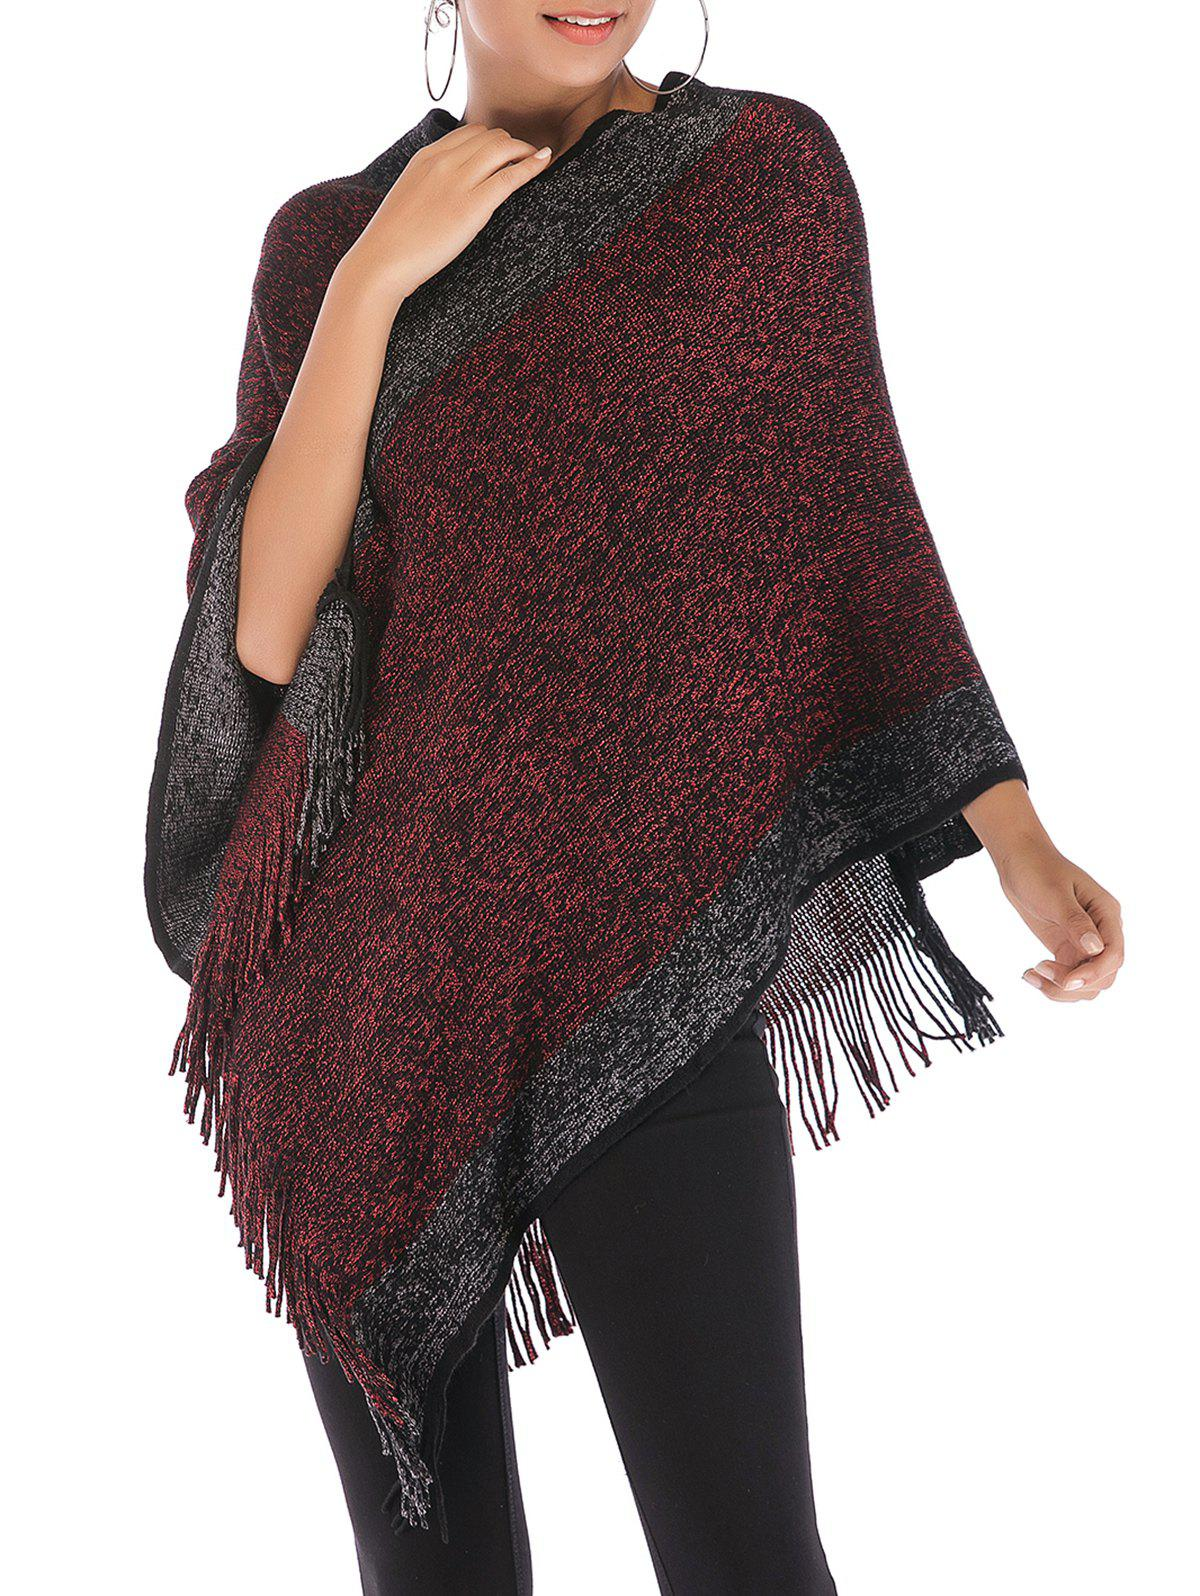 Discount Heathered Fringed Poncho Sweater